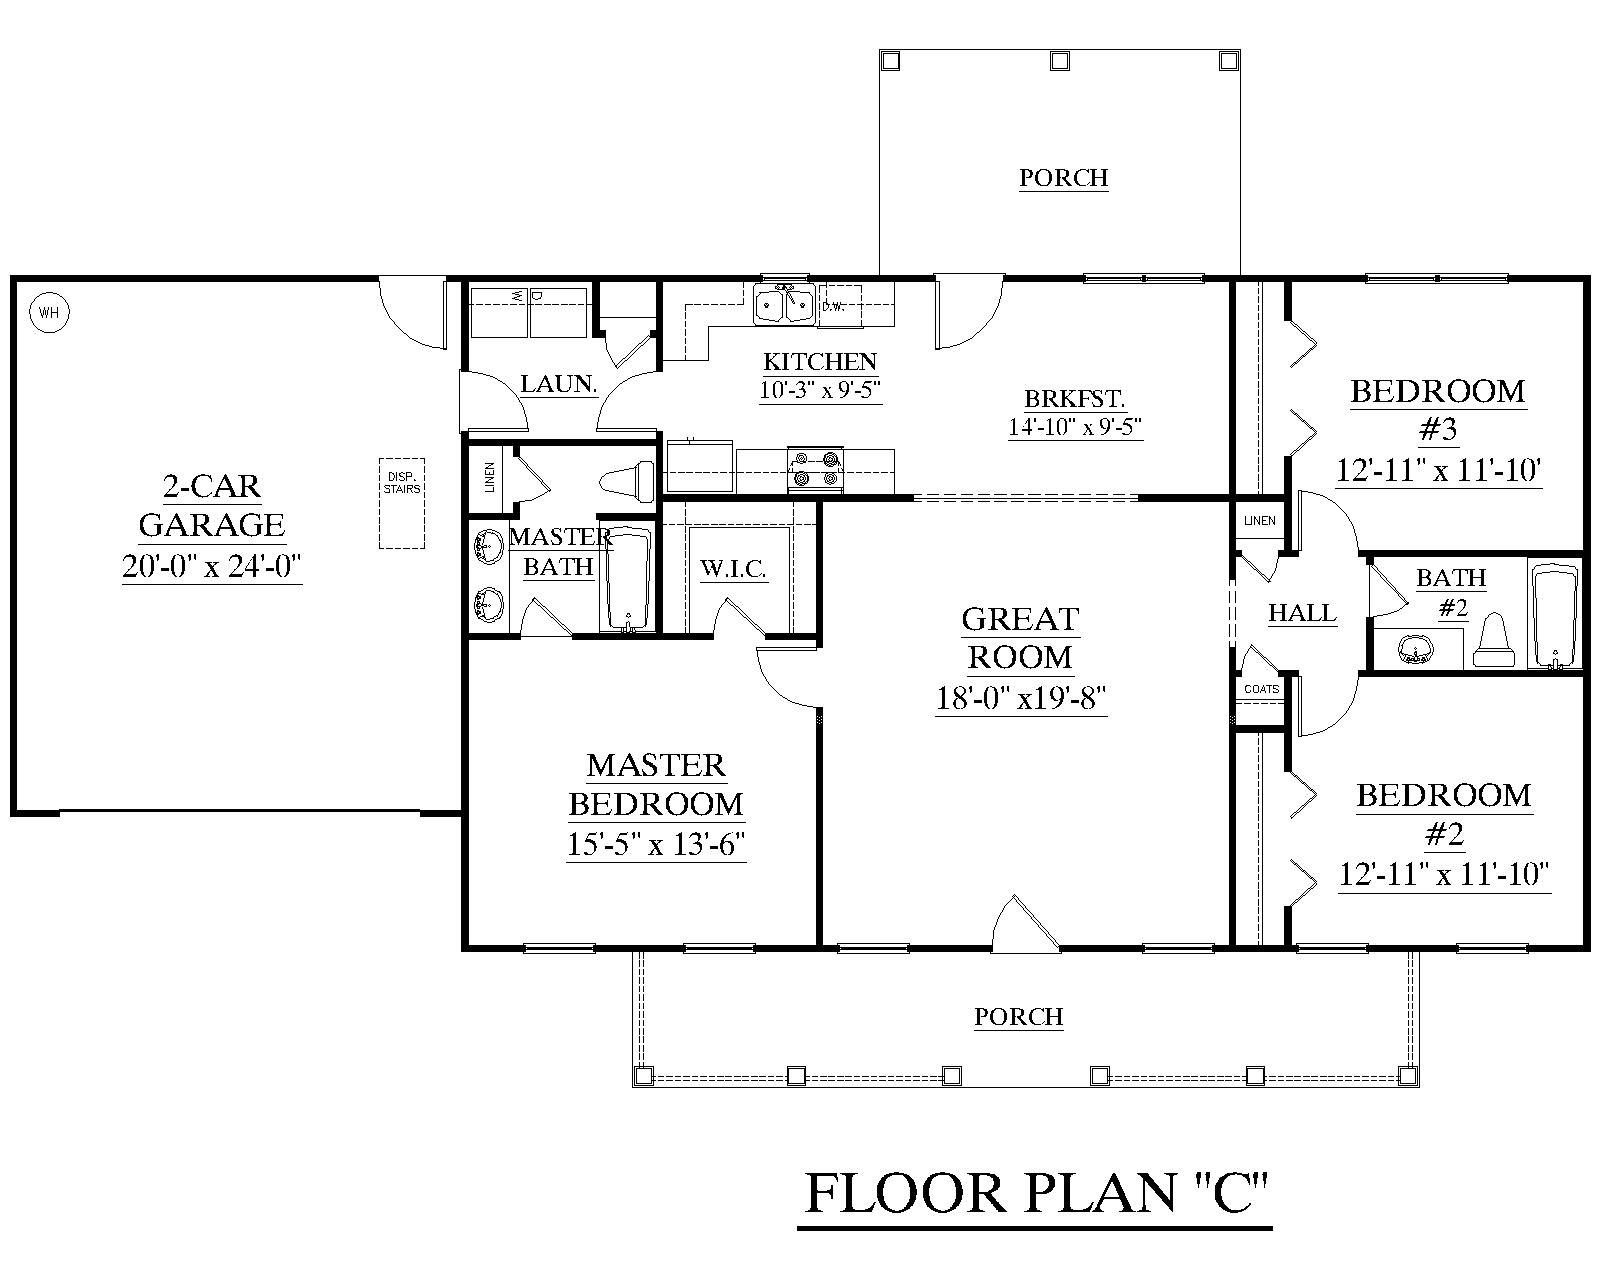 107 best inspired house plans images on pinterest floor plans house plan the james c attractive one story ranch split layout plan with three bedrooms open living room and formal dining porches front and rear